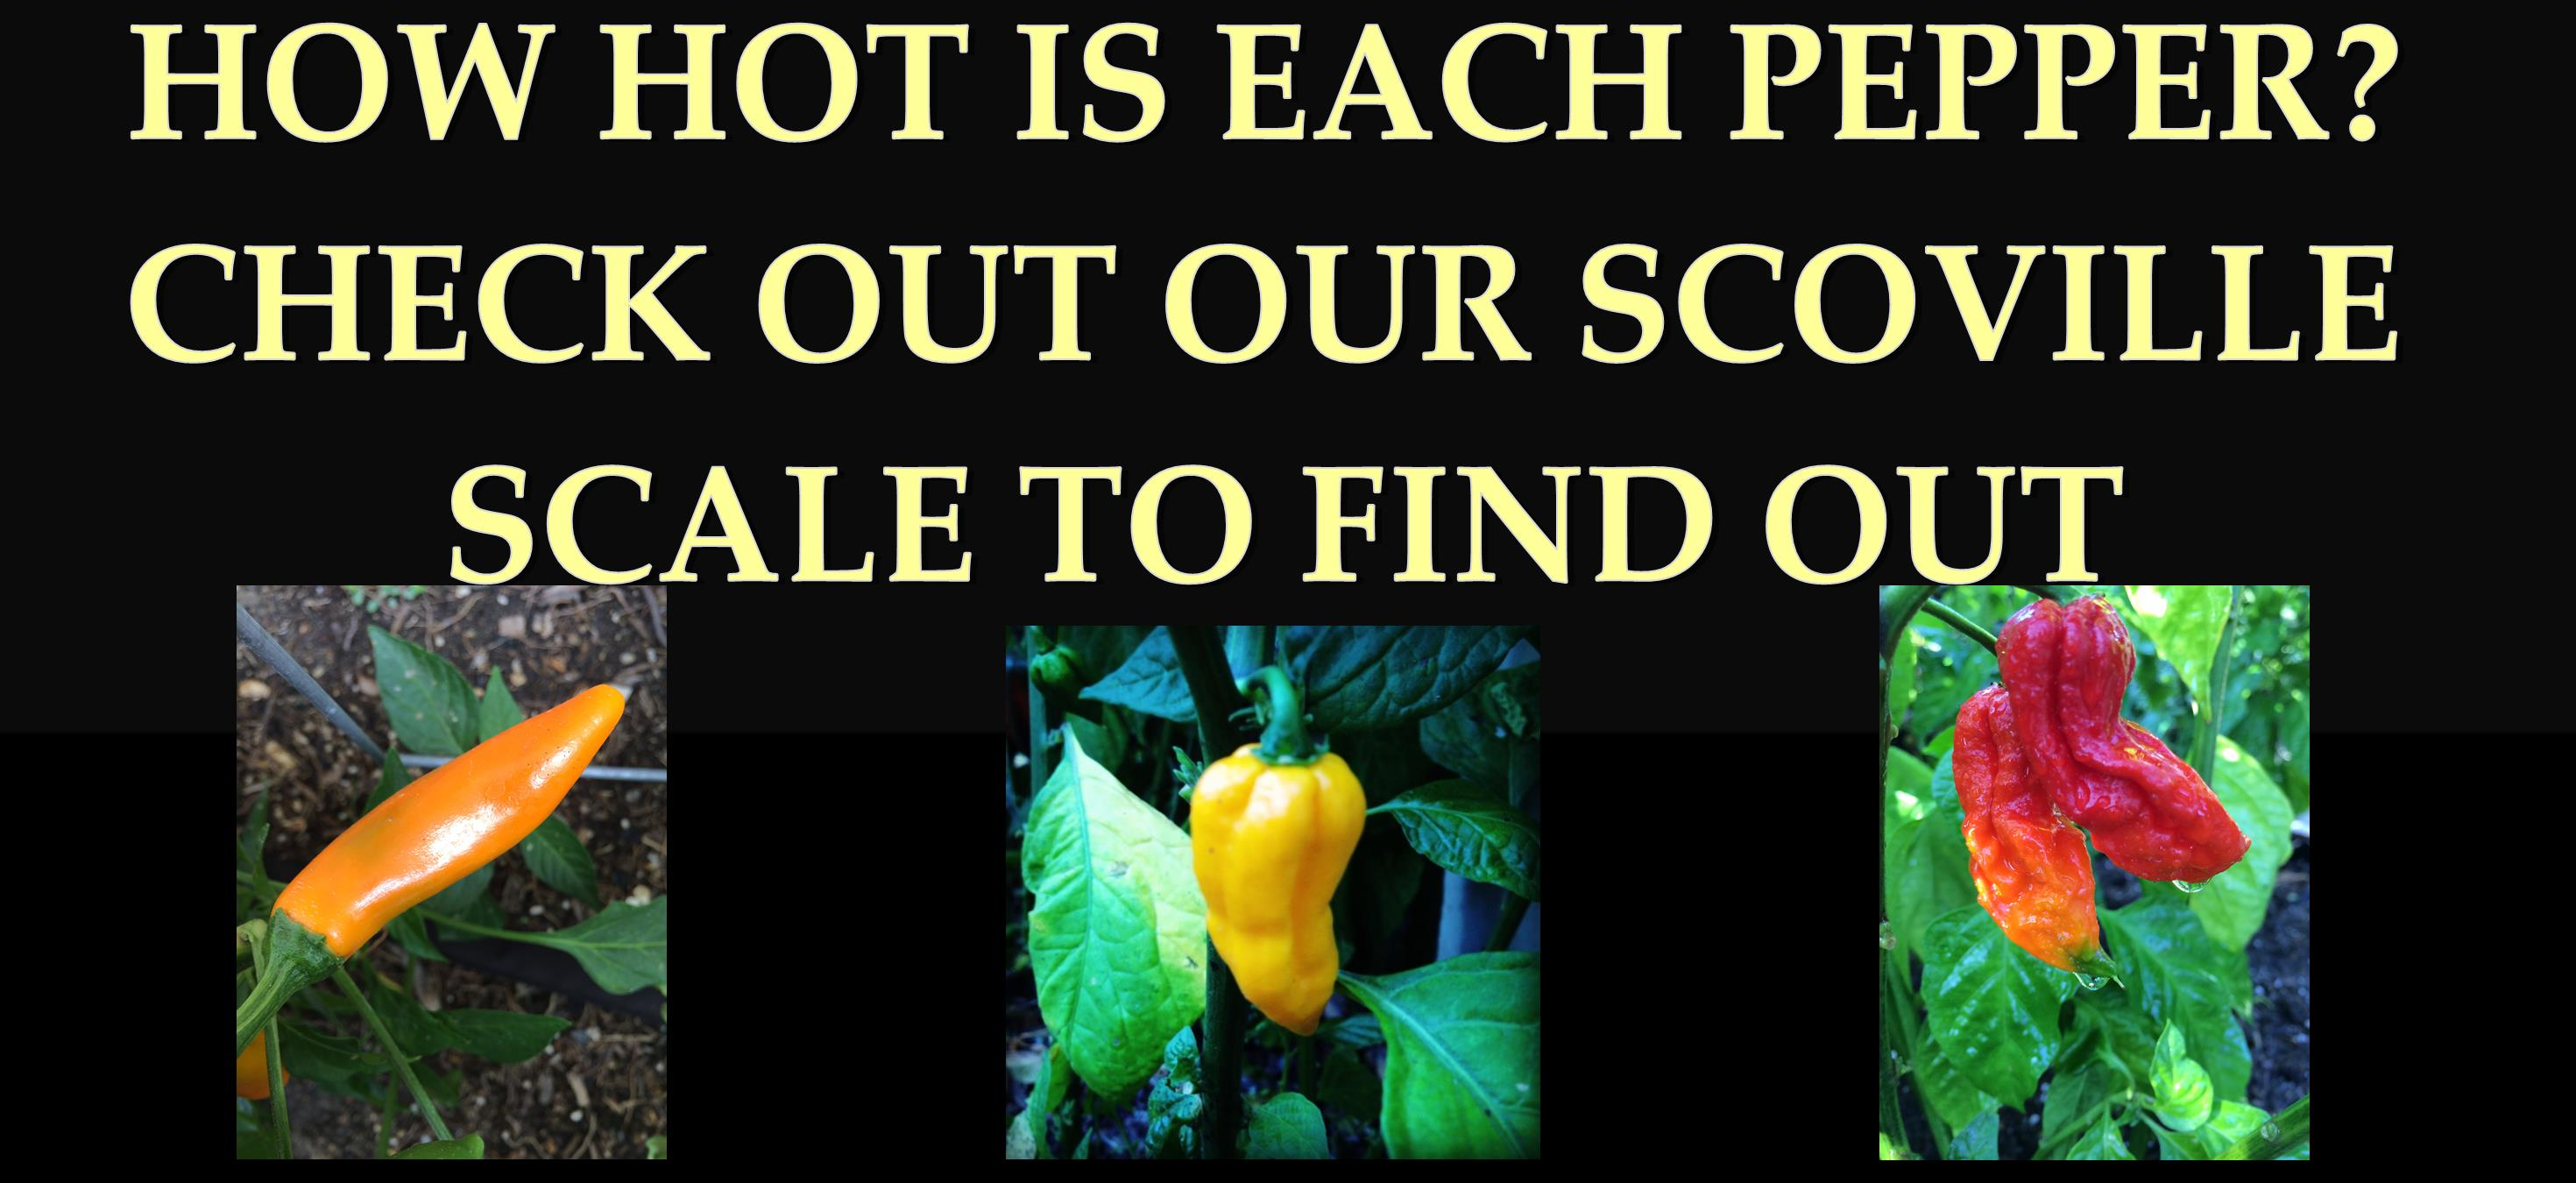 scoville-scale-tyler-farms-peppers-caro.jpg